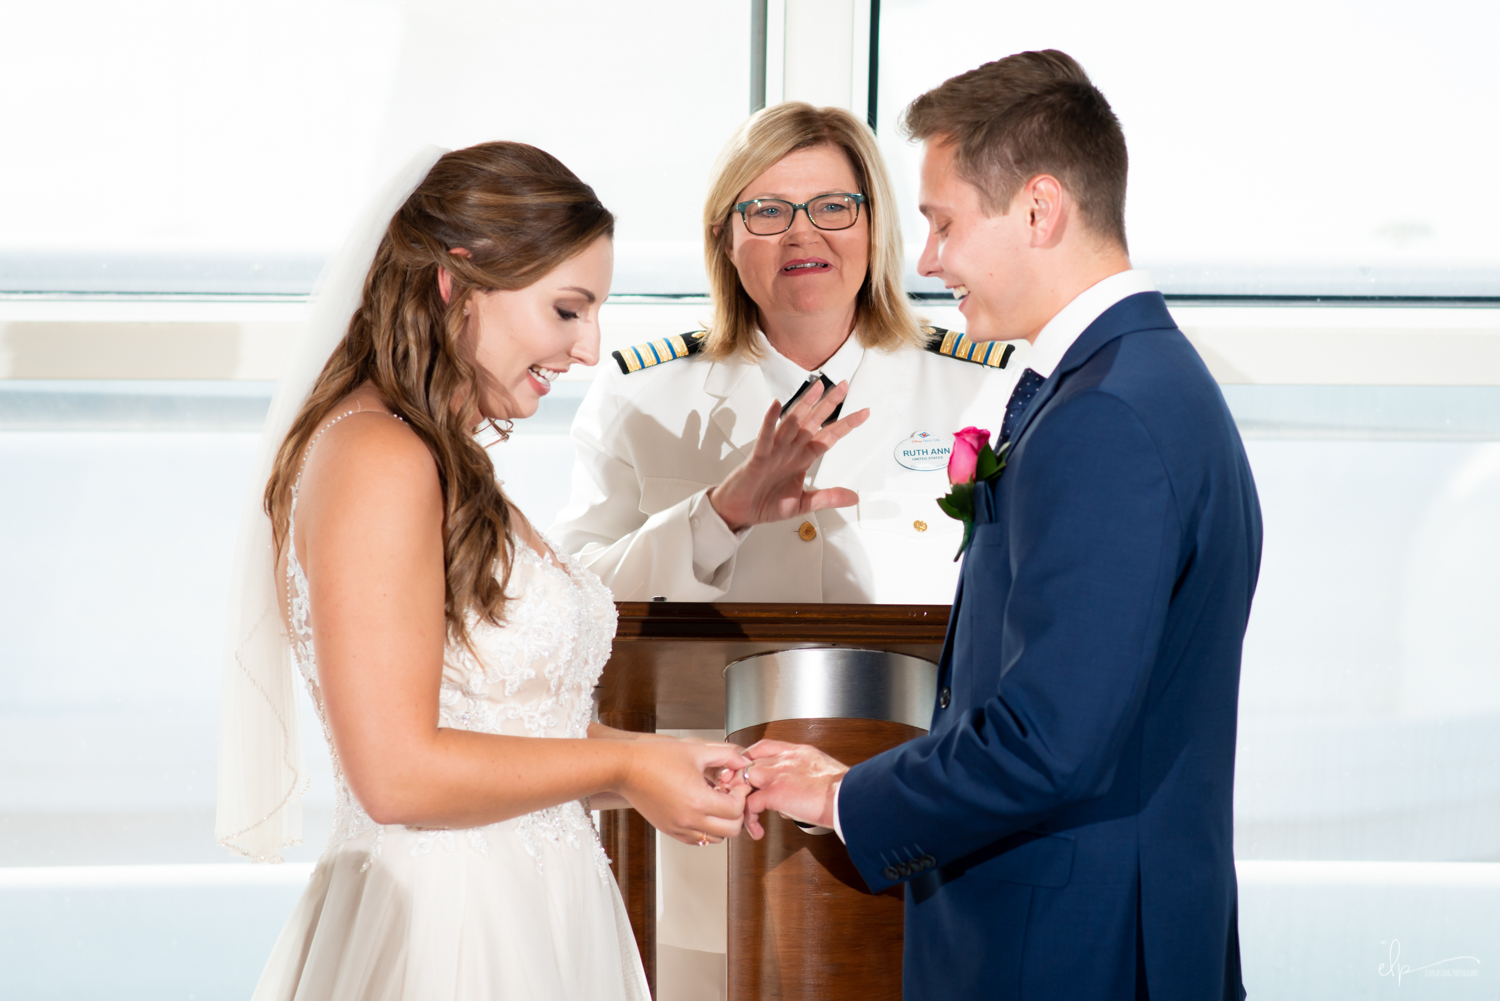 wedding ceremony photography in outlook lounge on disney cruise